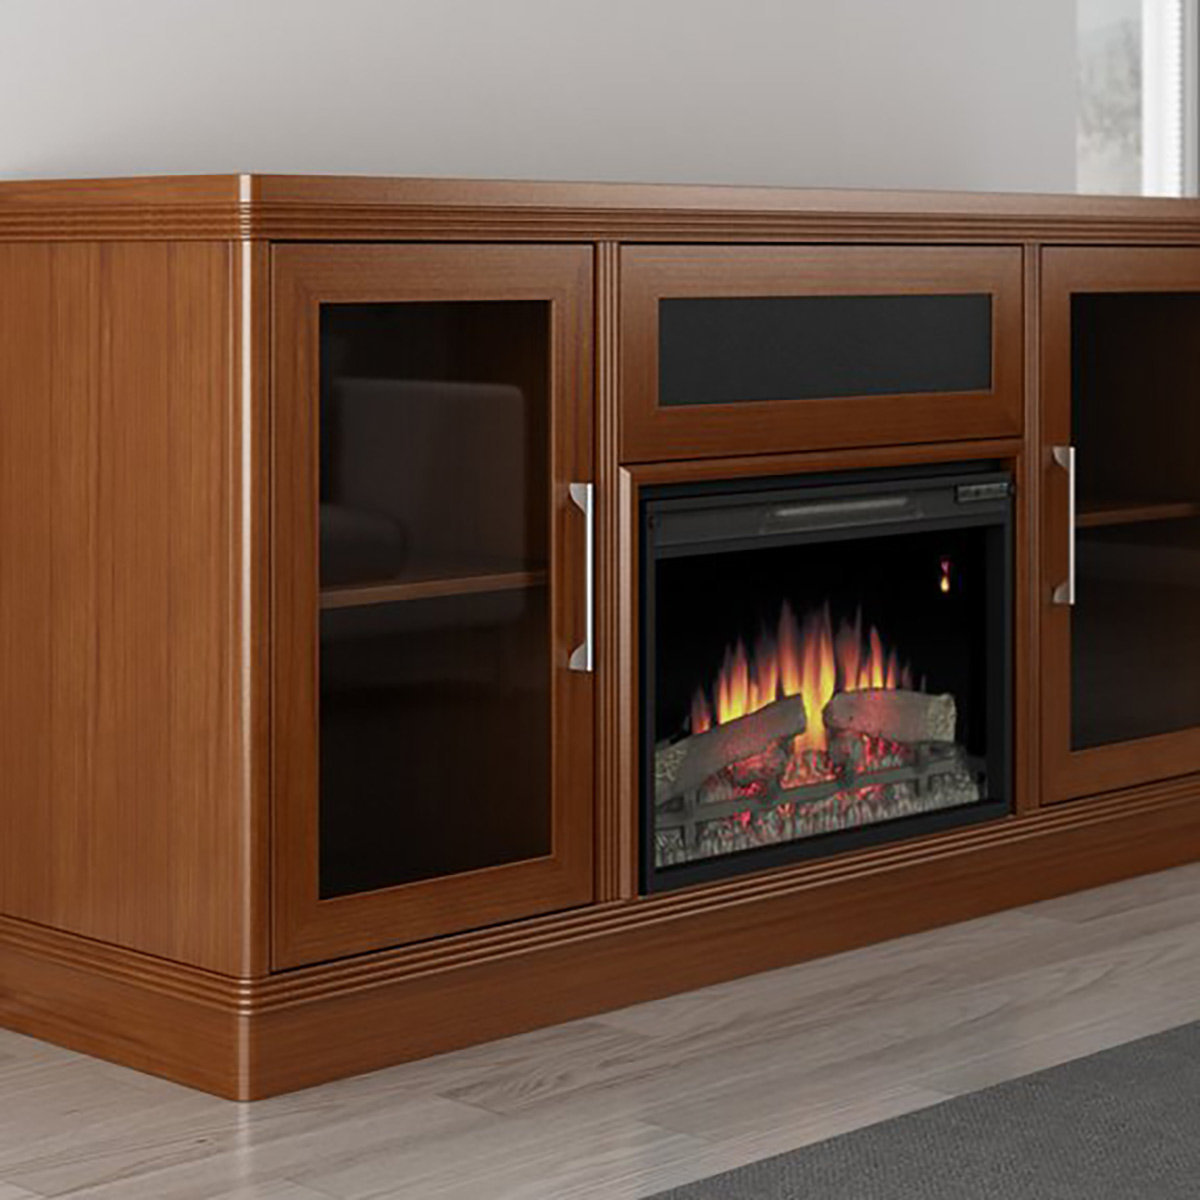 Furnitech 70 Quot Ft70trfb Electric Fireplace Tv Stand Light